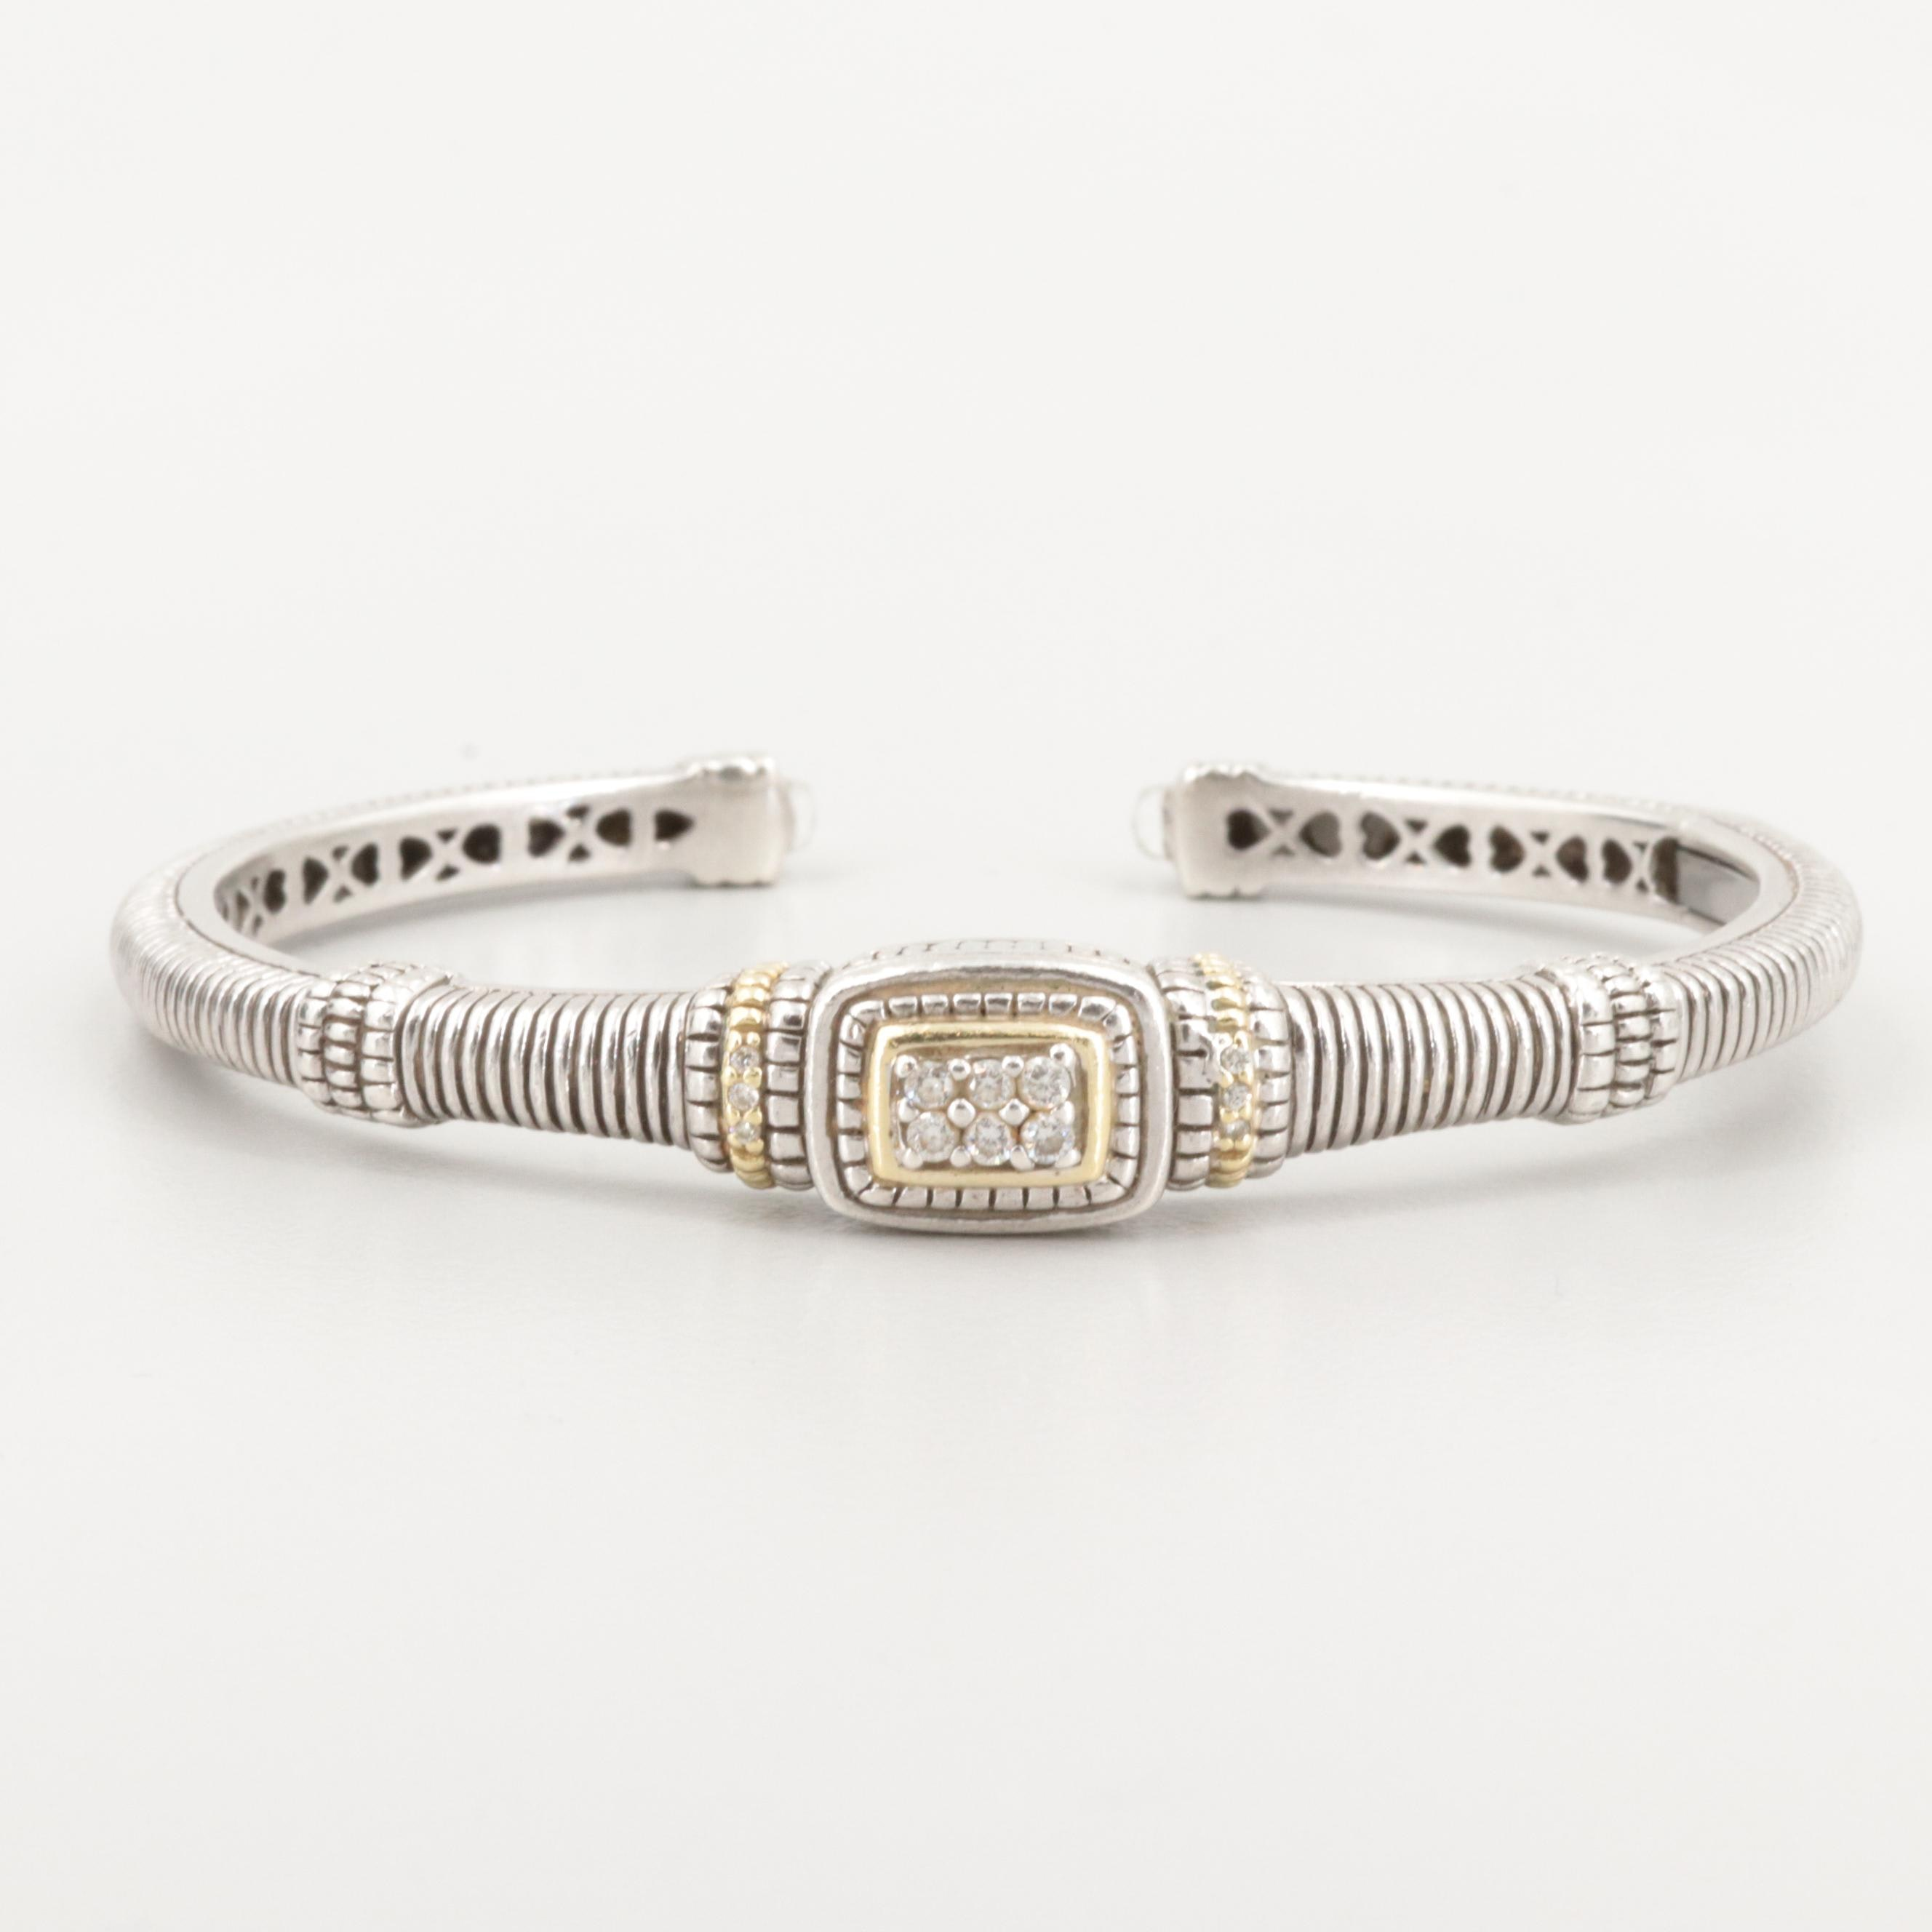 Judith Ripka Sterling Diamond and Quartz Bracelet with 18K Yellow Gold Accents